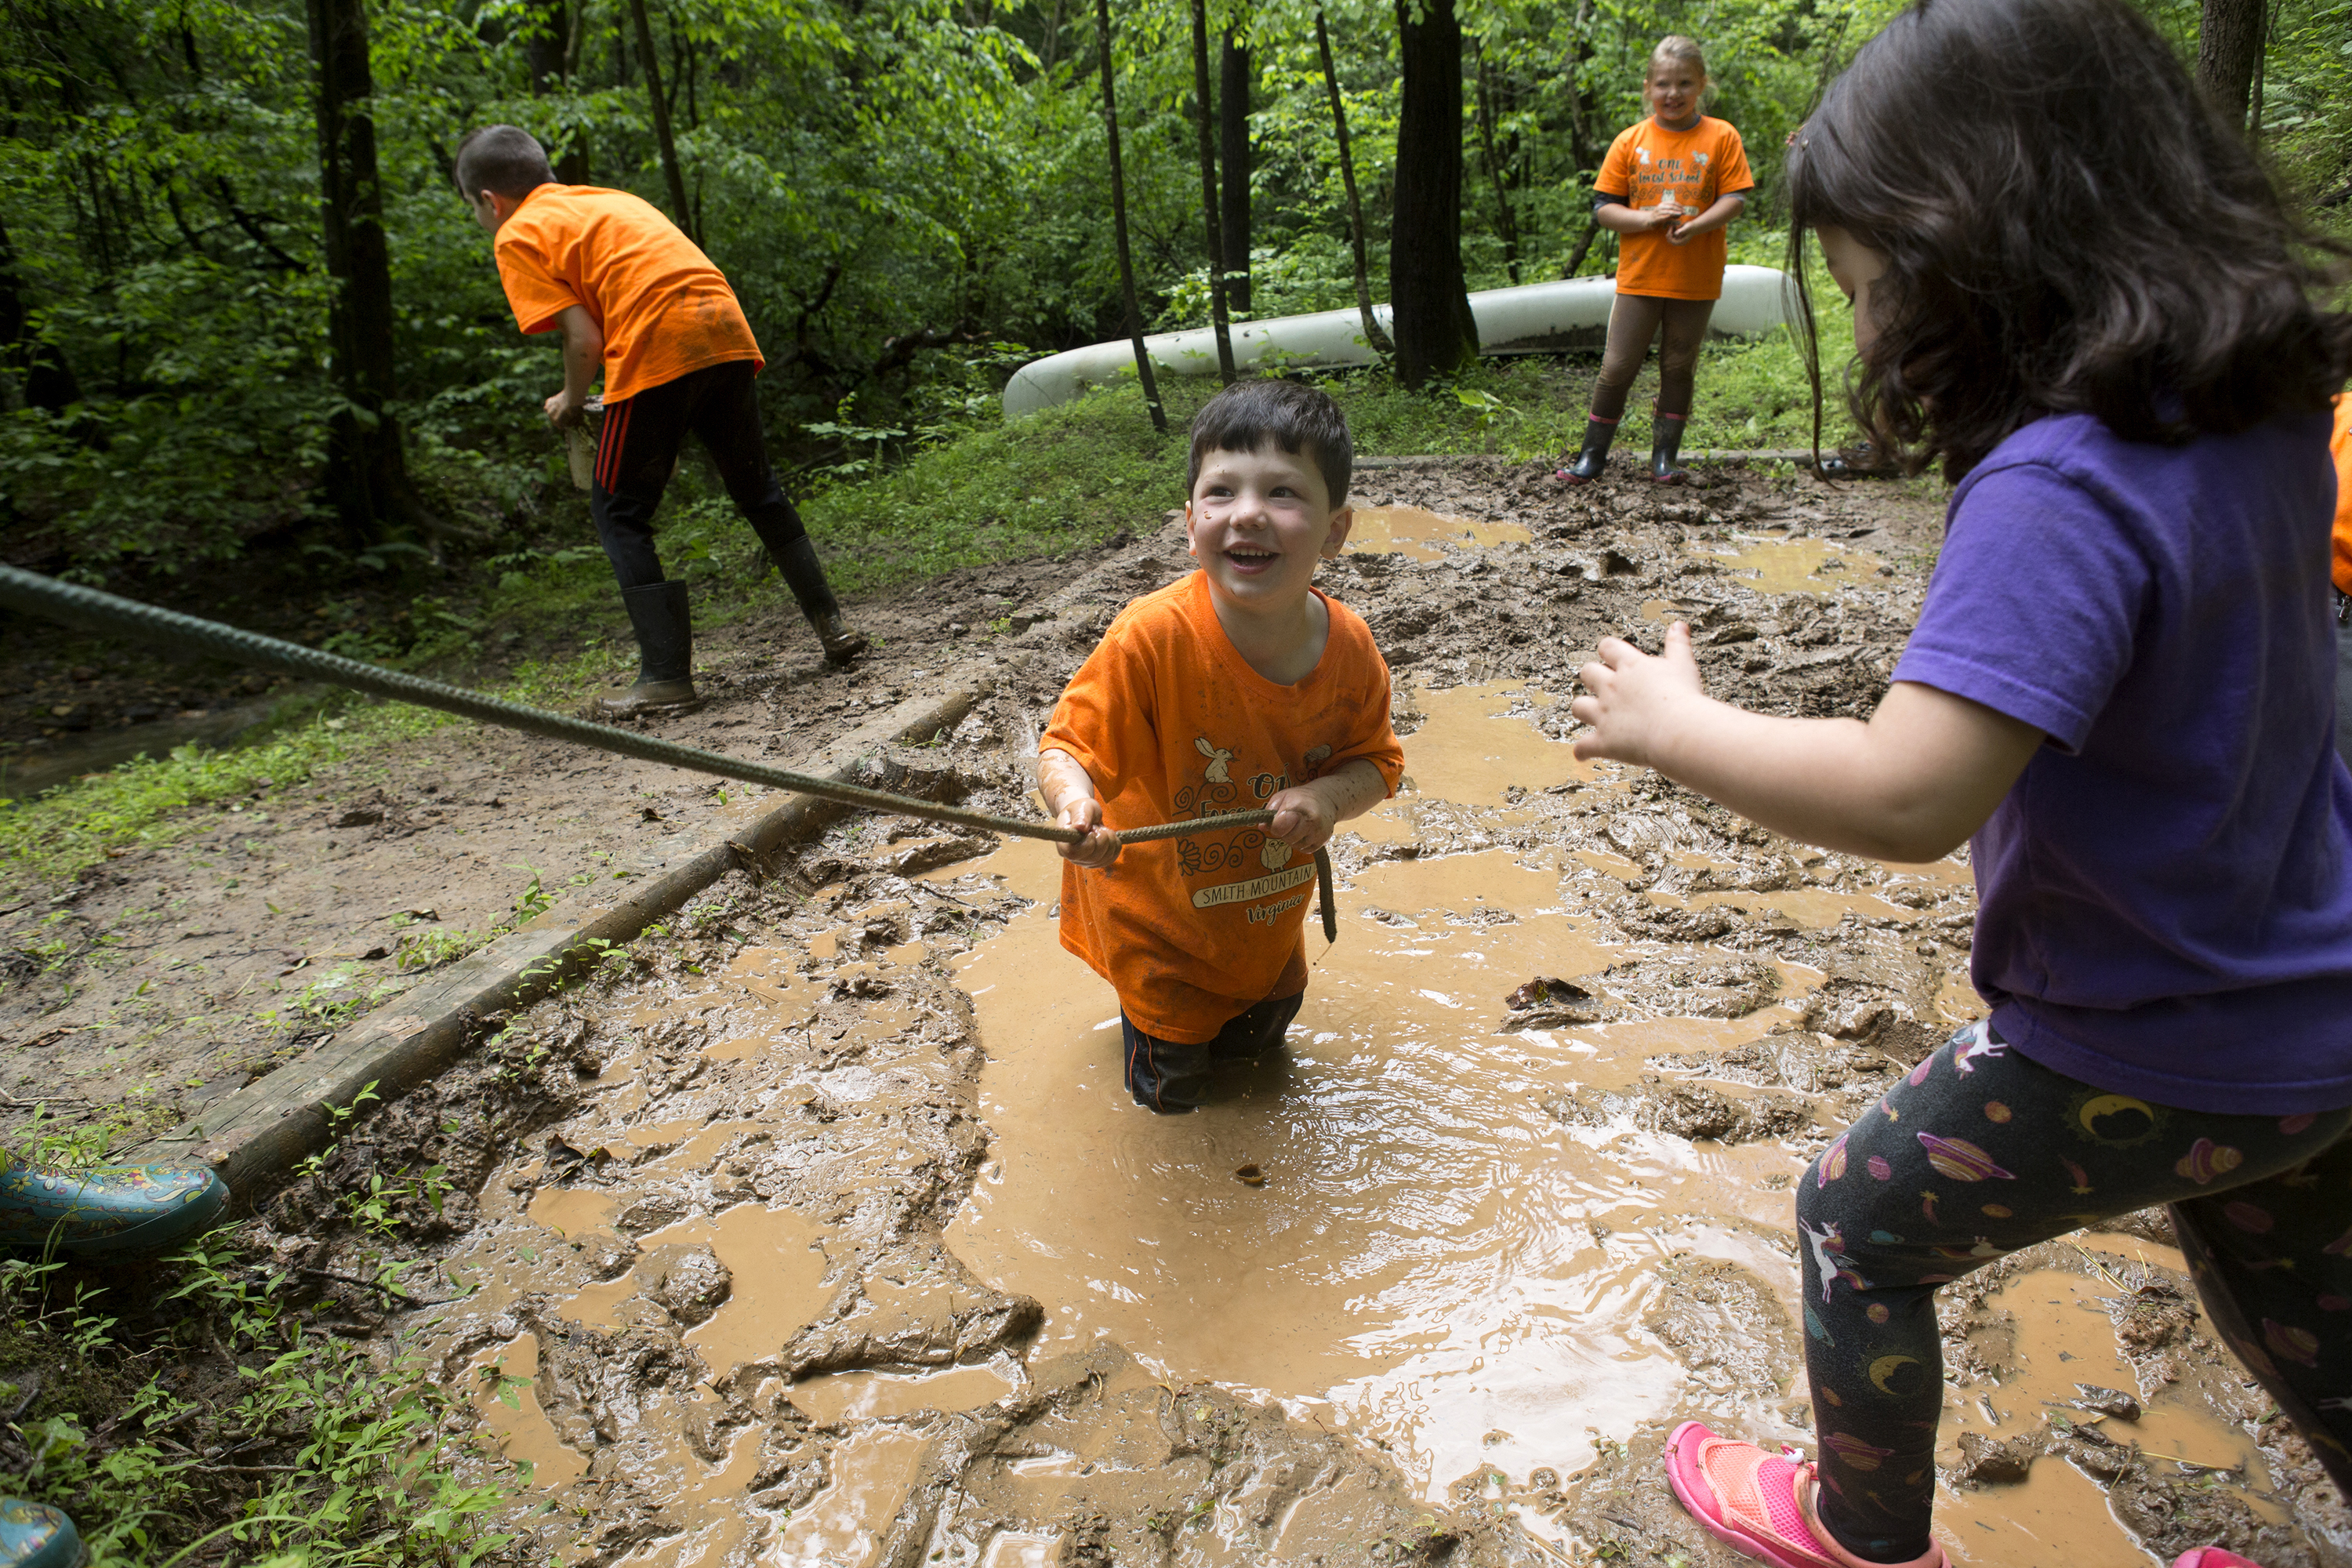 Isaiah Reilly, 4, plays in the mud pit at ONE Forest School in Huddleston, Va., last week The outdoor school is staying open during the pandemic. MUST CREDIT: photo for The Washington Post by Heather Rousseau.